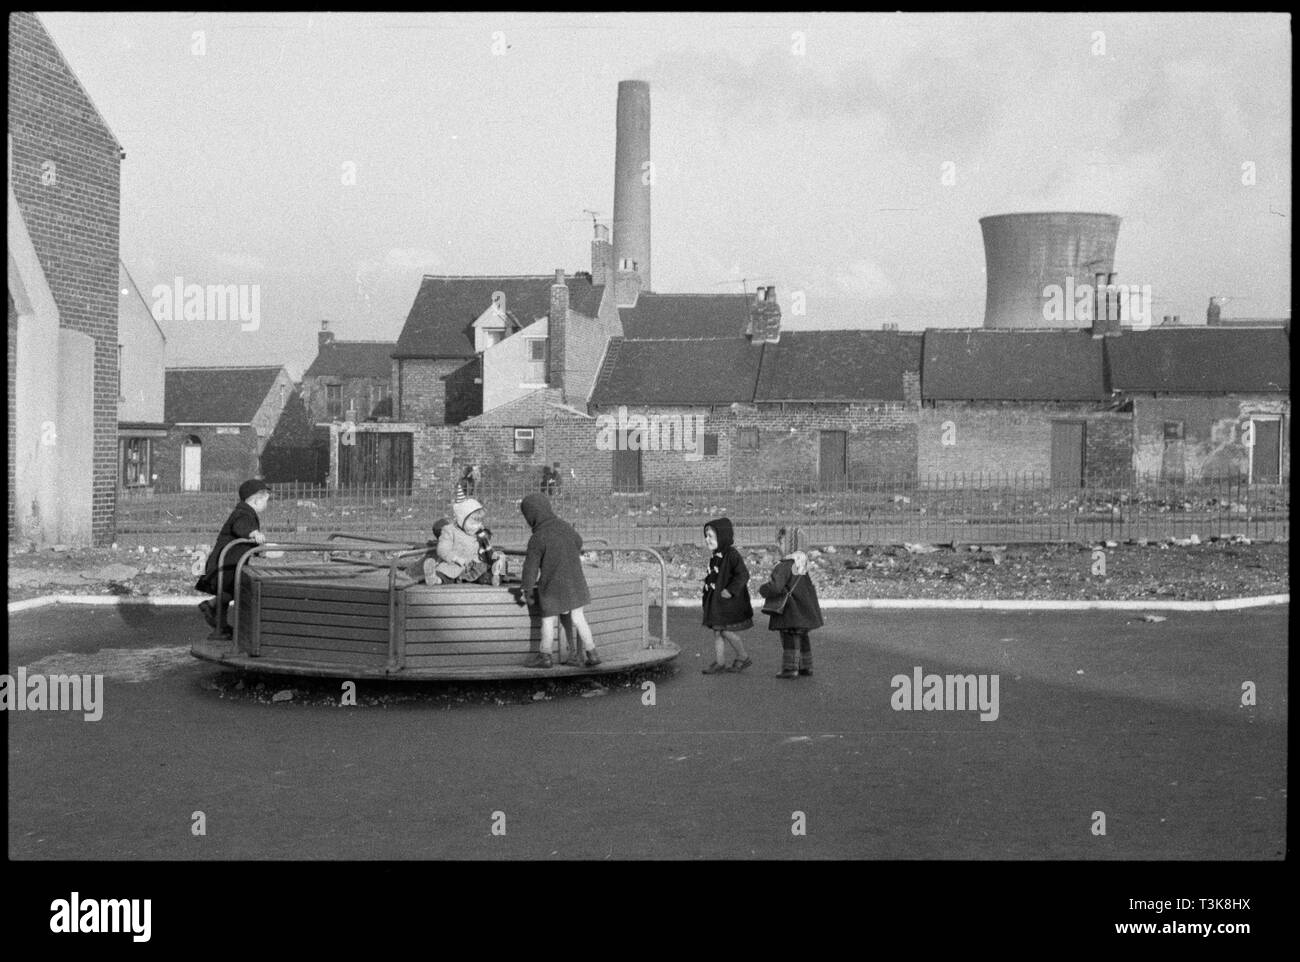 "Children's playground, Lansdowne Street, Millfield, Sunderland, 1961. Children playing on a roundabout in the Landsdowne Street playground with the rear of houses on Millburn Street in the background. This is one of a group of photographs associated with the Pyrex factory (Wear Flint Glass Works, manufacturers of Pyrex in the UK) for which the original archive enclosure gives the following information: ""Jan 1961; Outside the Factory, Streets and Children"". - Stock Image"